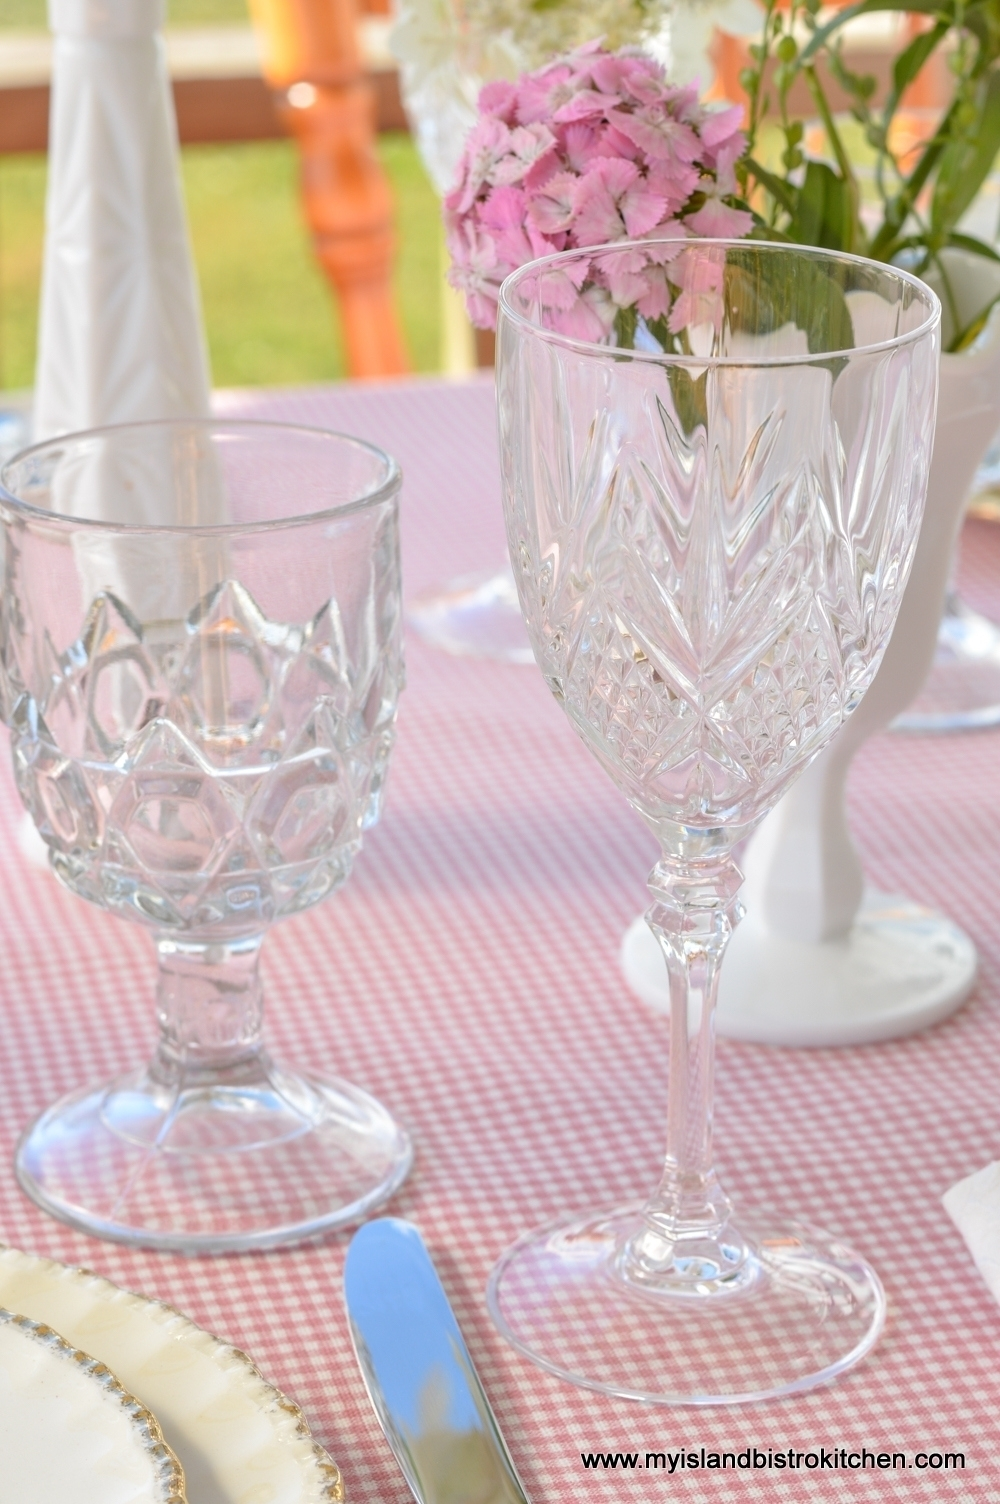 Mixed vintage glassware works in casual tablesettings